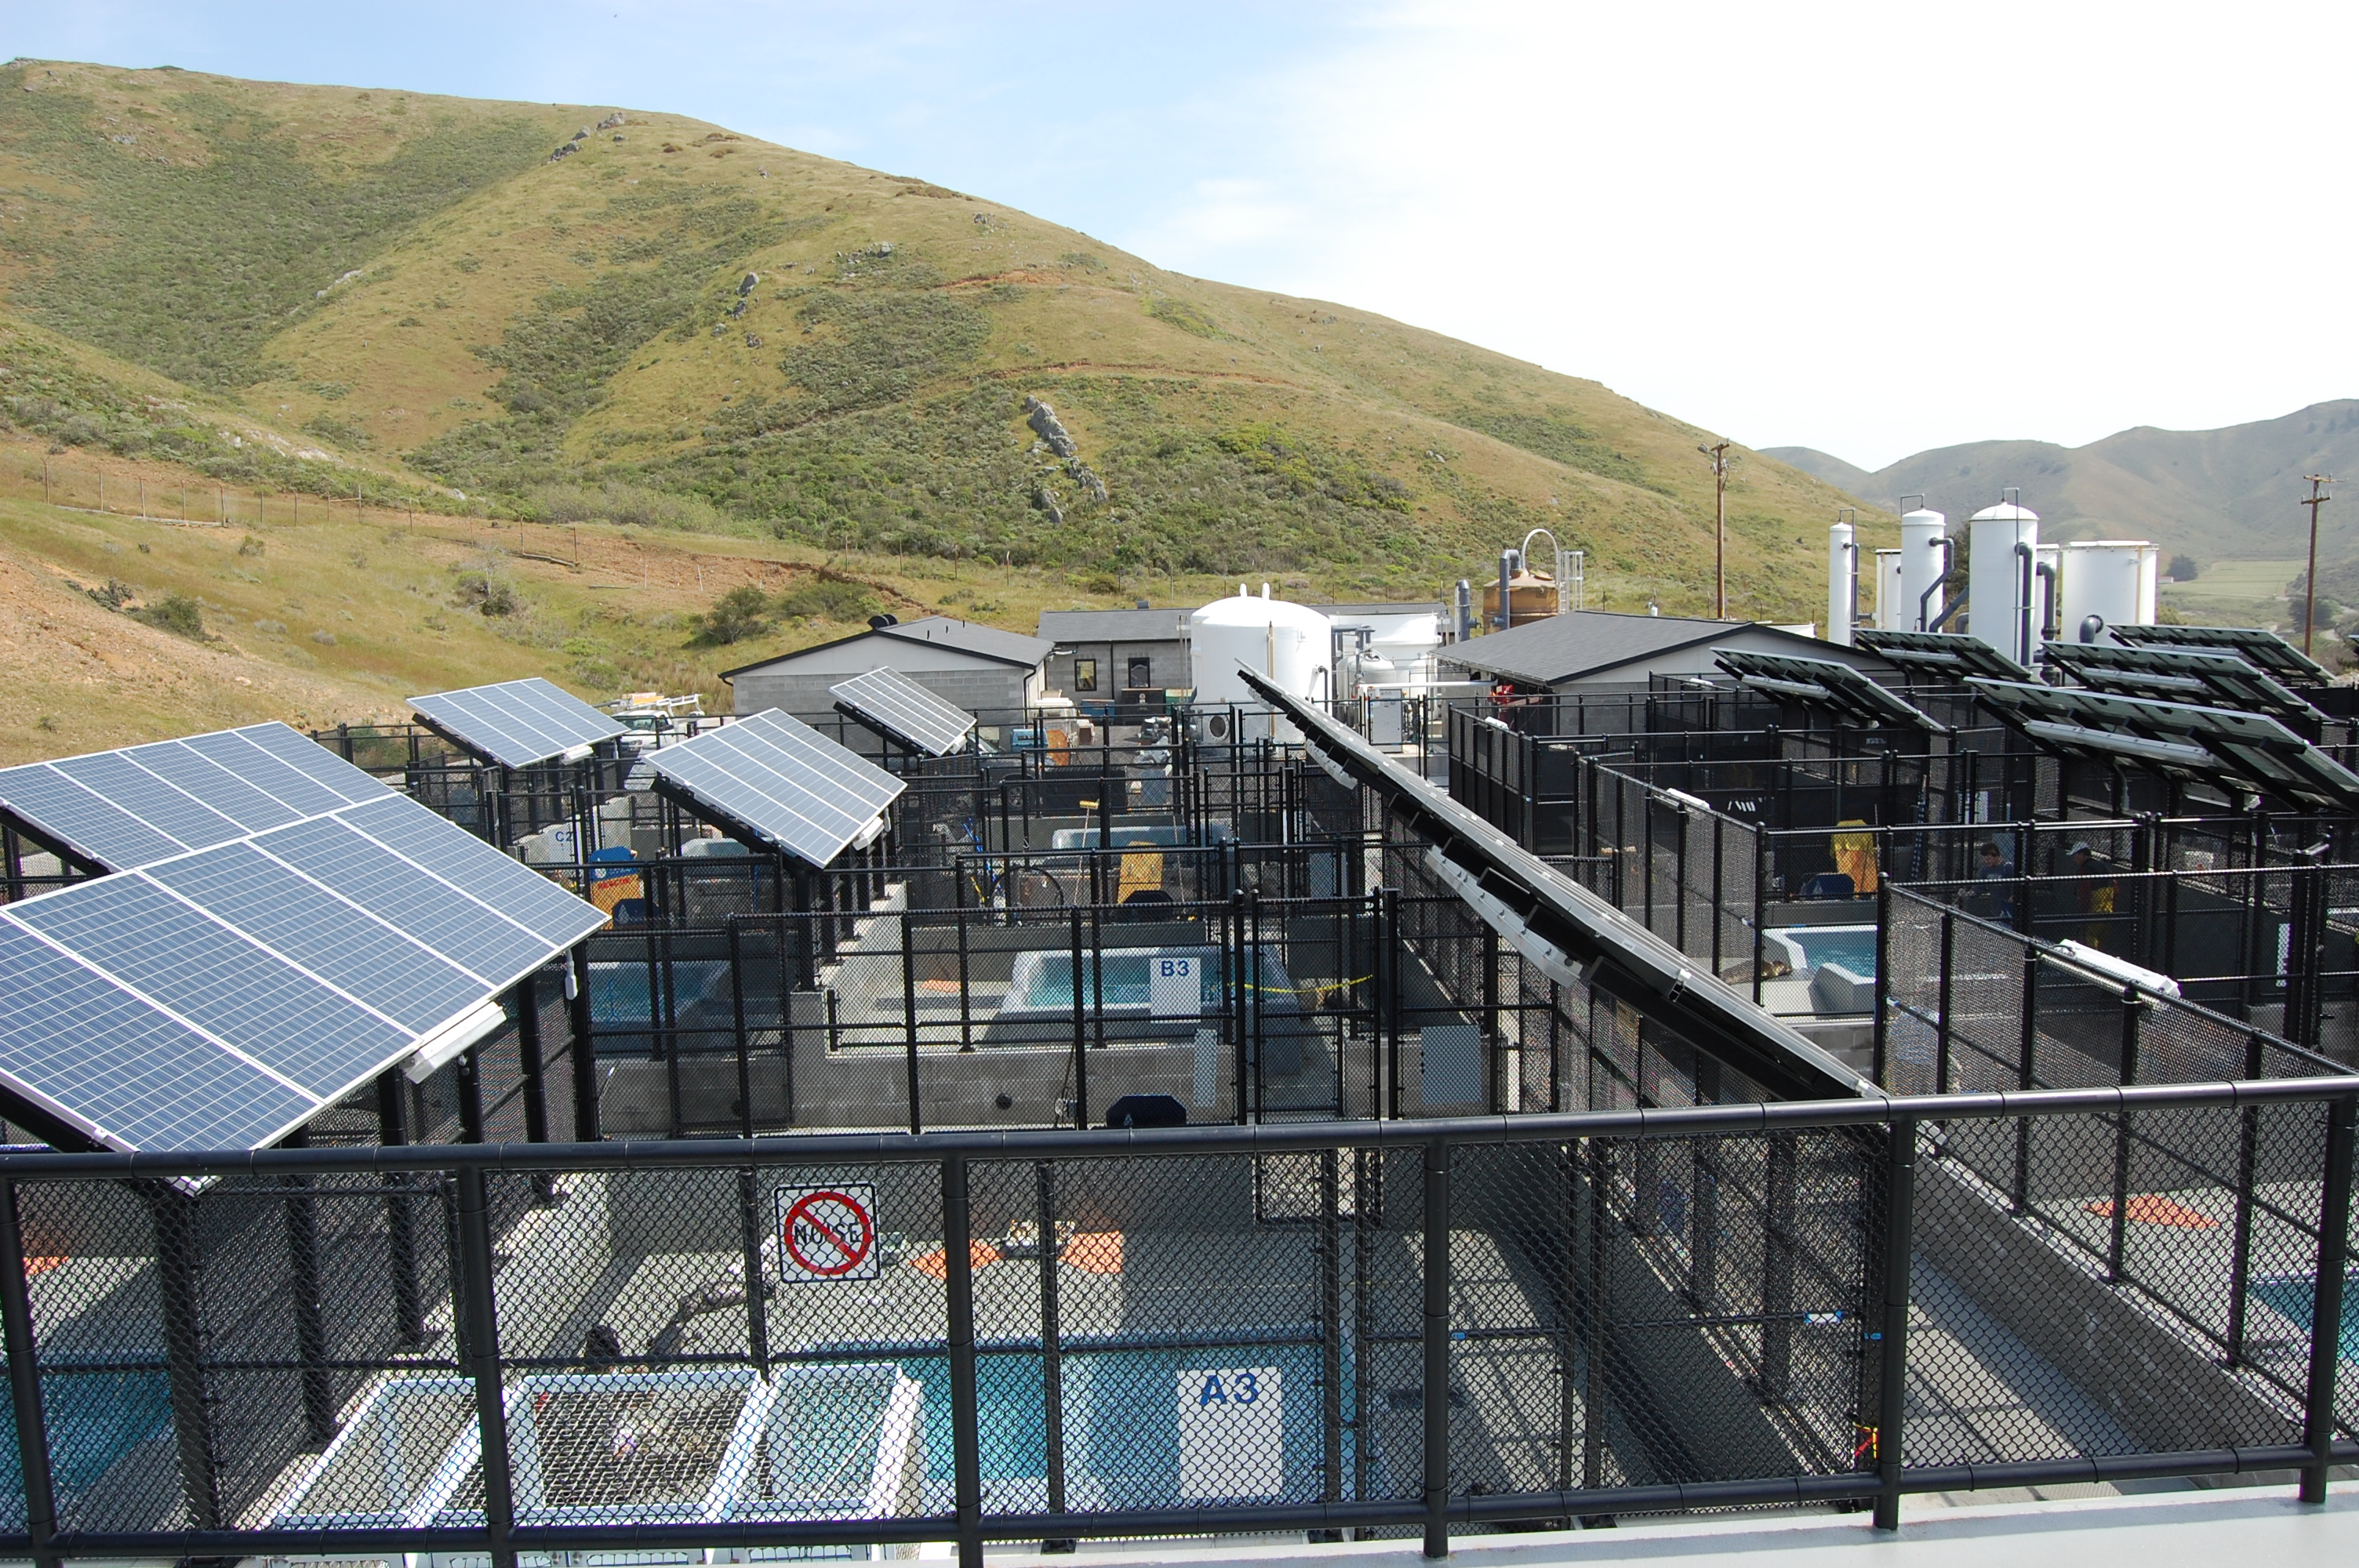 Solar Panels For Your Home >> The Marine Mammal Center's Newly Rebuilt Hospital and ...